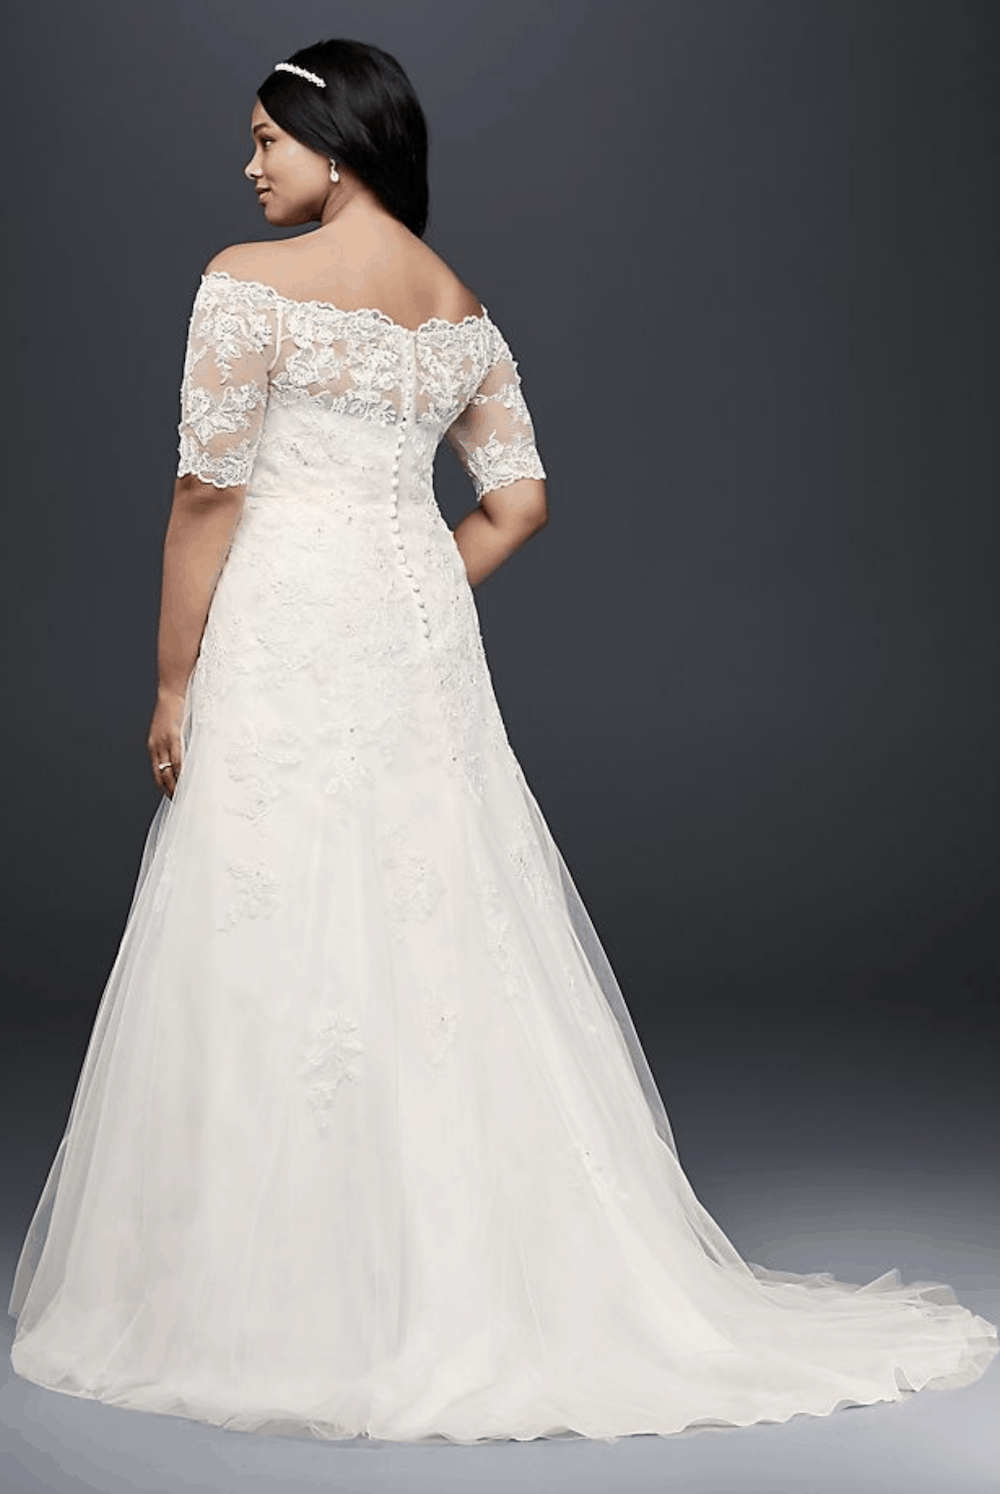 Plus Size Wedding Dresses with Lace Sleeves Jewel 3:4 Sleeve Plus Size Bridal Gowns